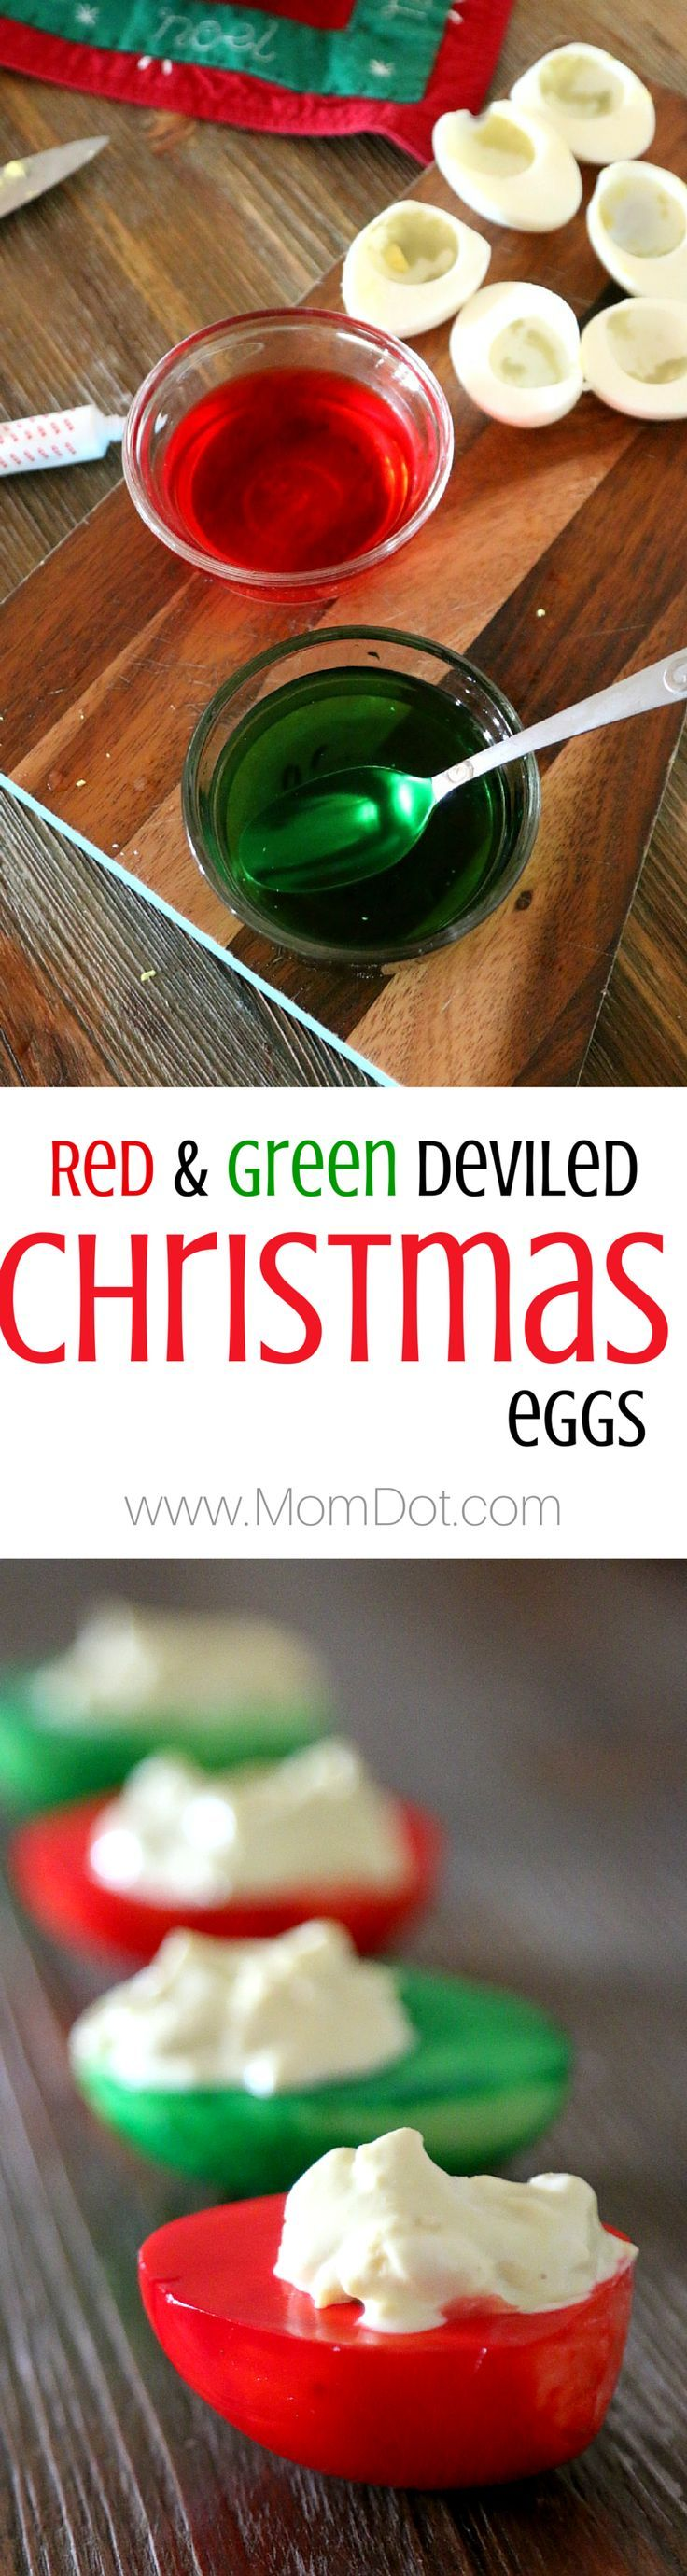 Christmas Deviled Eggs that WOW the holiday table